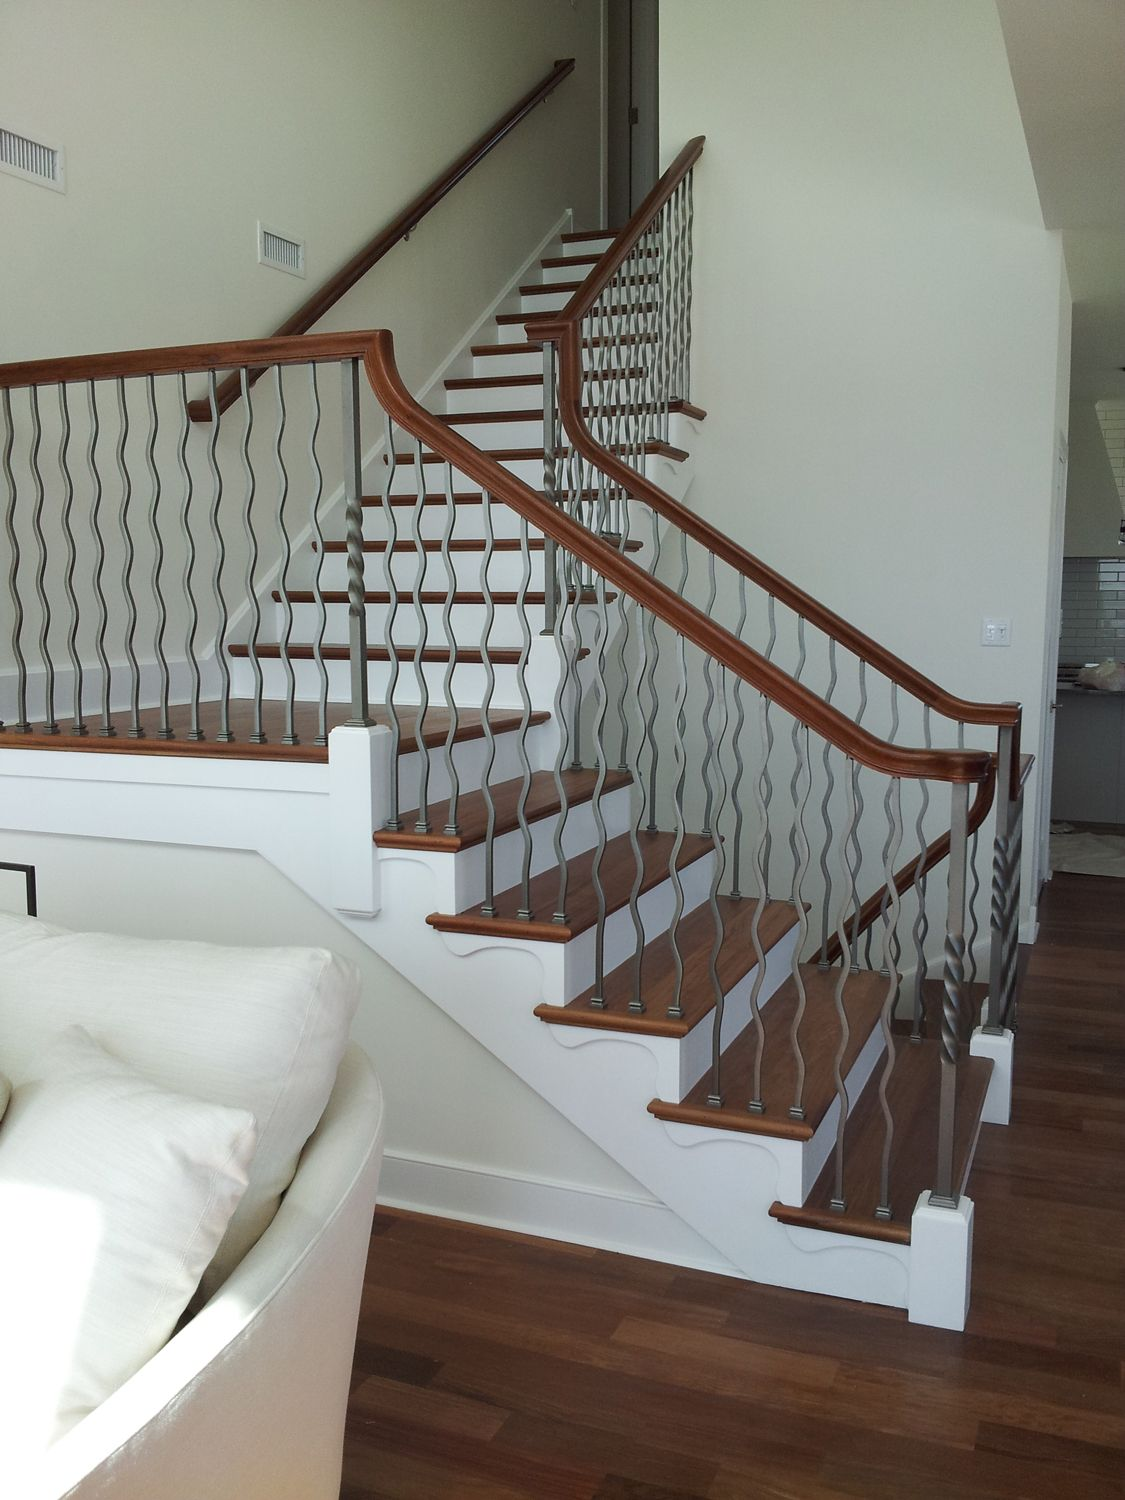 10mm Clear Tempered Glass Stair Railing With Brushed Nickel Glass Clamps Grandriverglass Com Glass Railing Stairs Glass Stairs Stairs Design